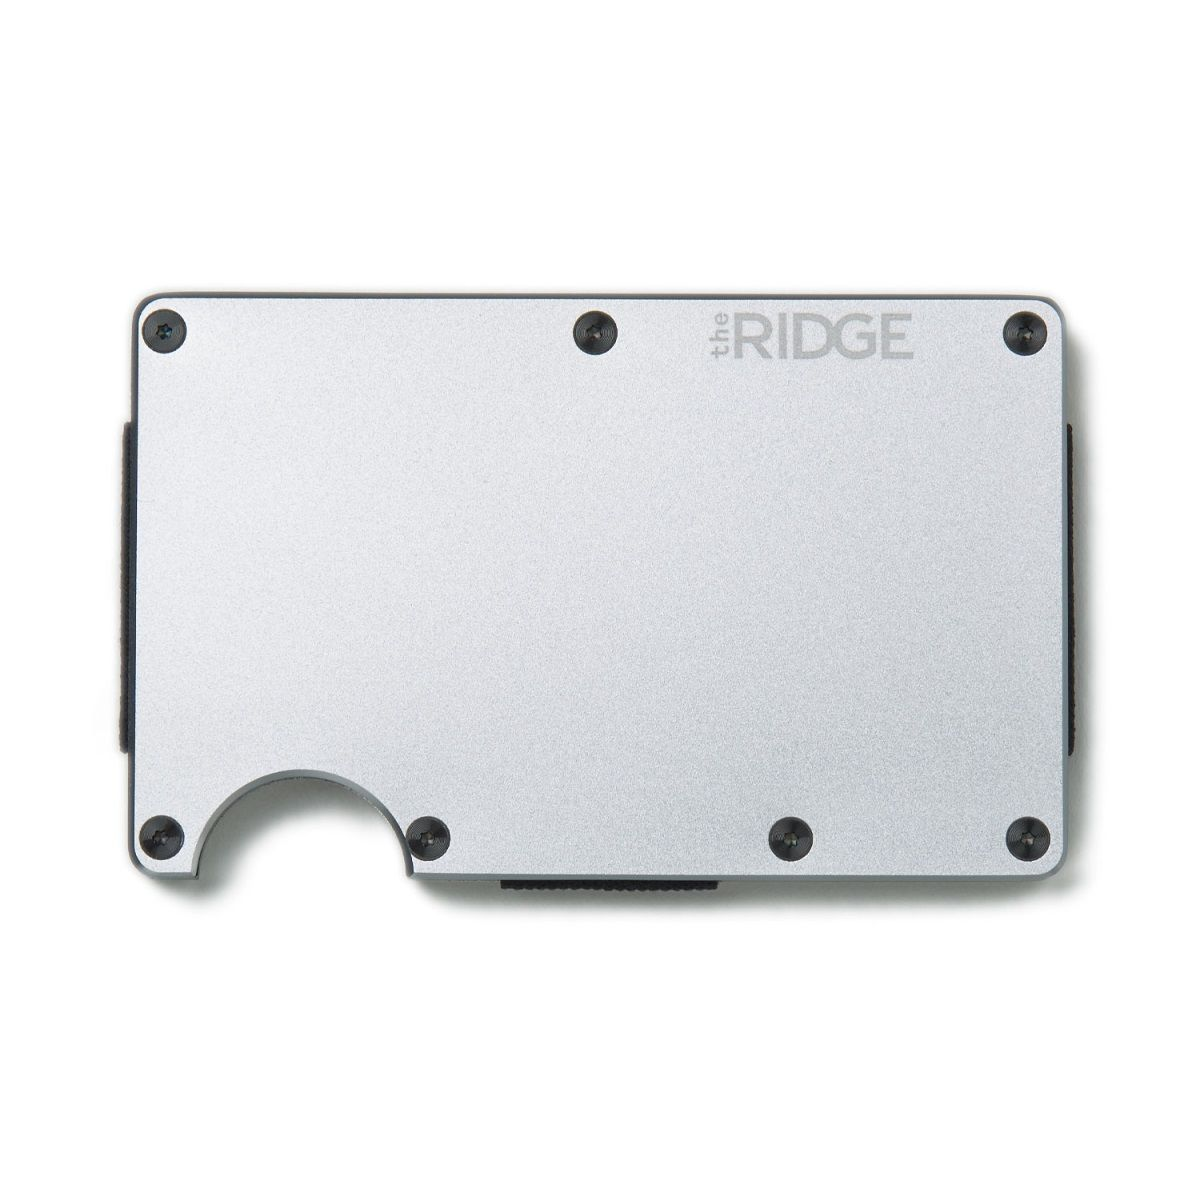 THE RIDGE Aluminum Wallet With Money Clip - Silver